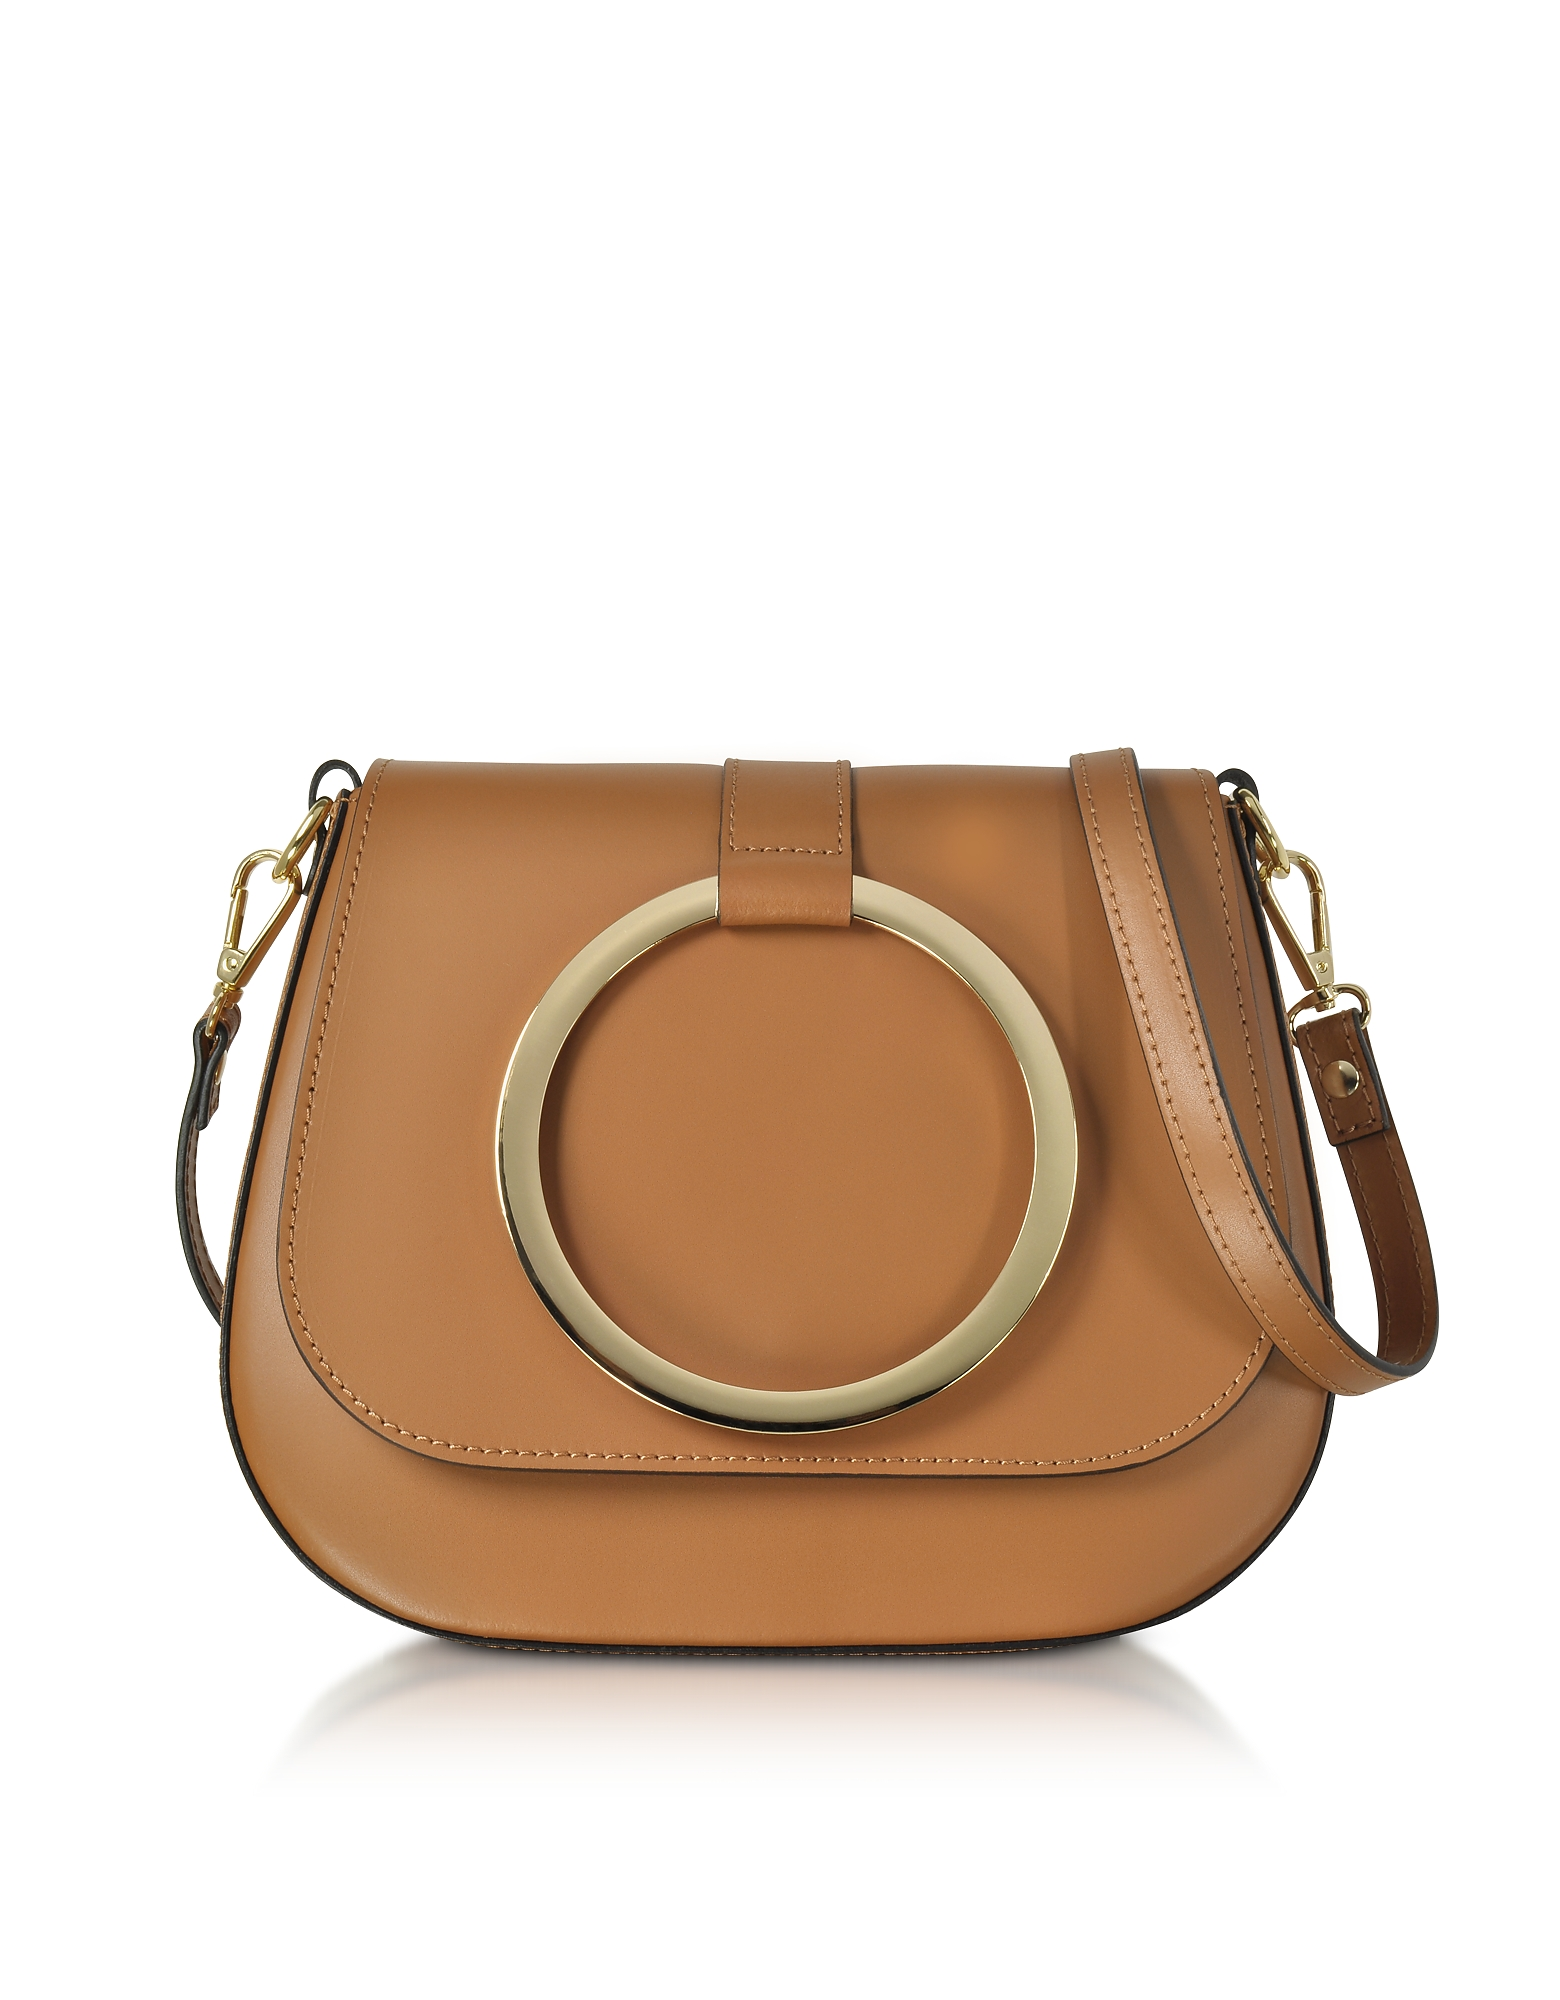 Le Parmentier Handbags, Cognac Smooth Leather Shoulder Bag